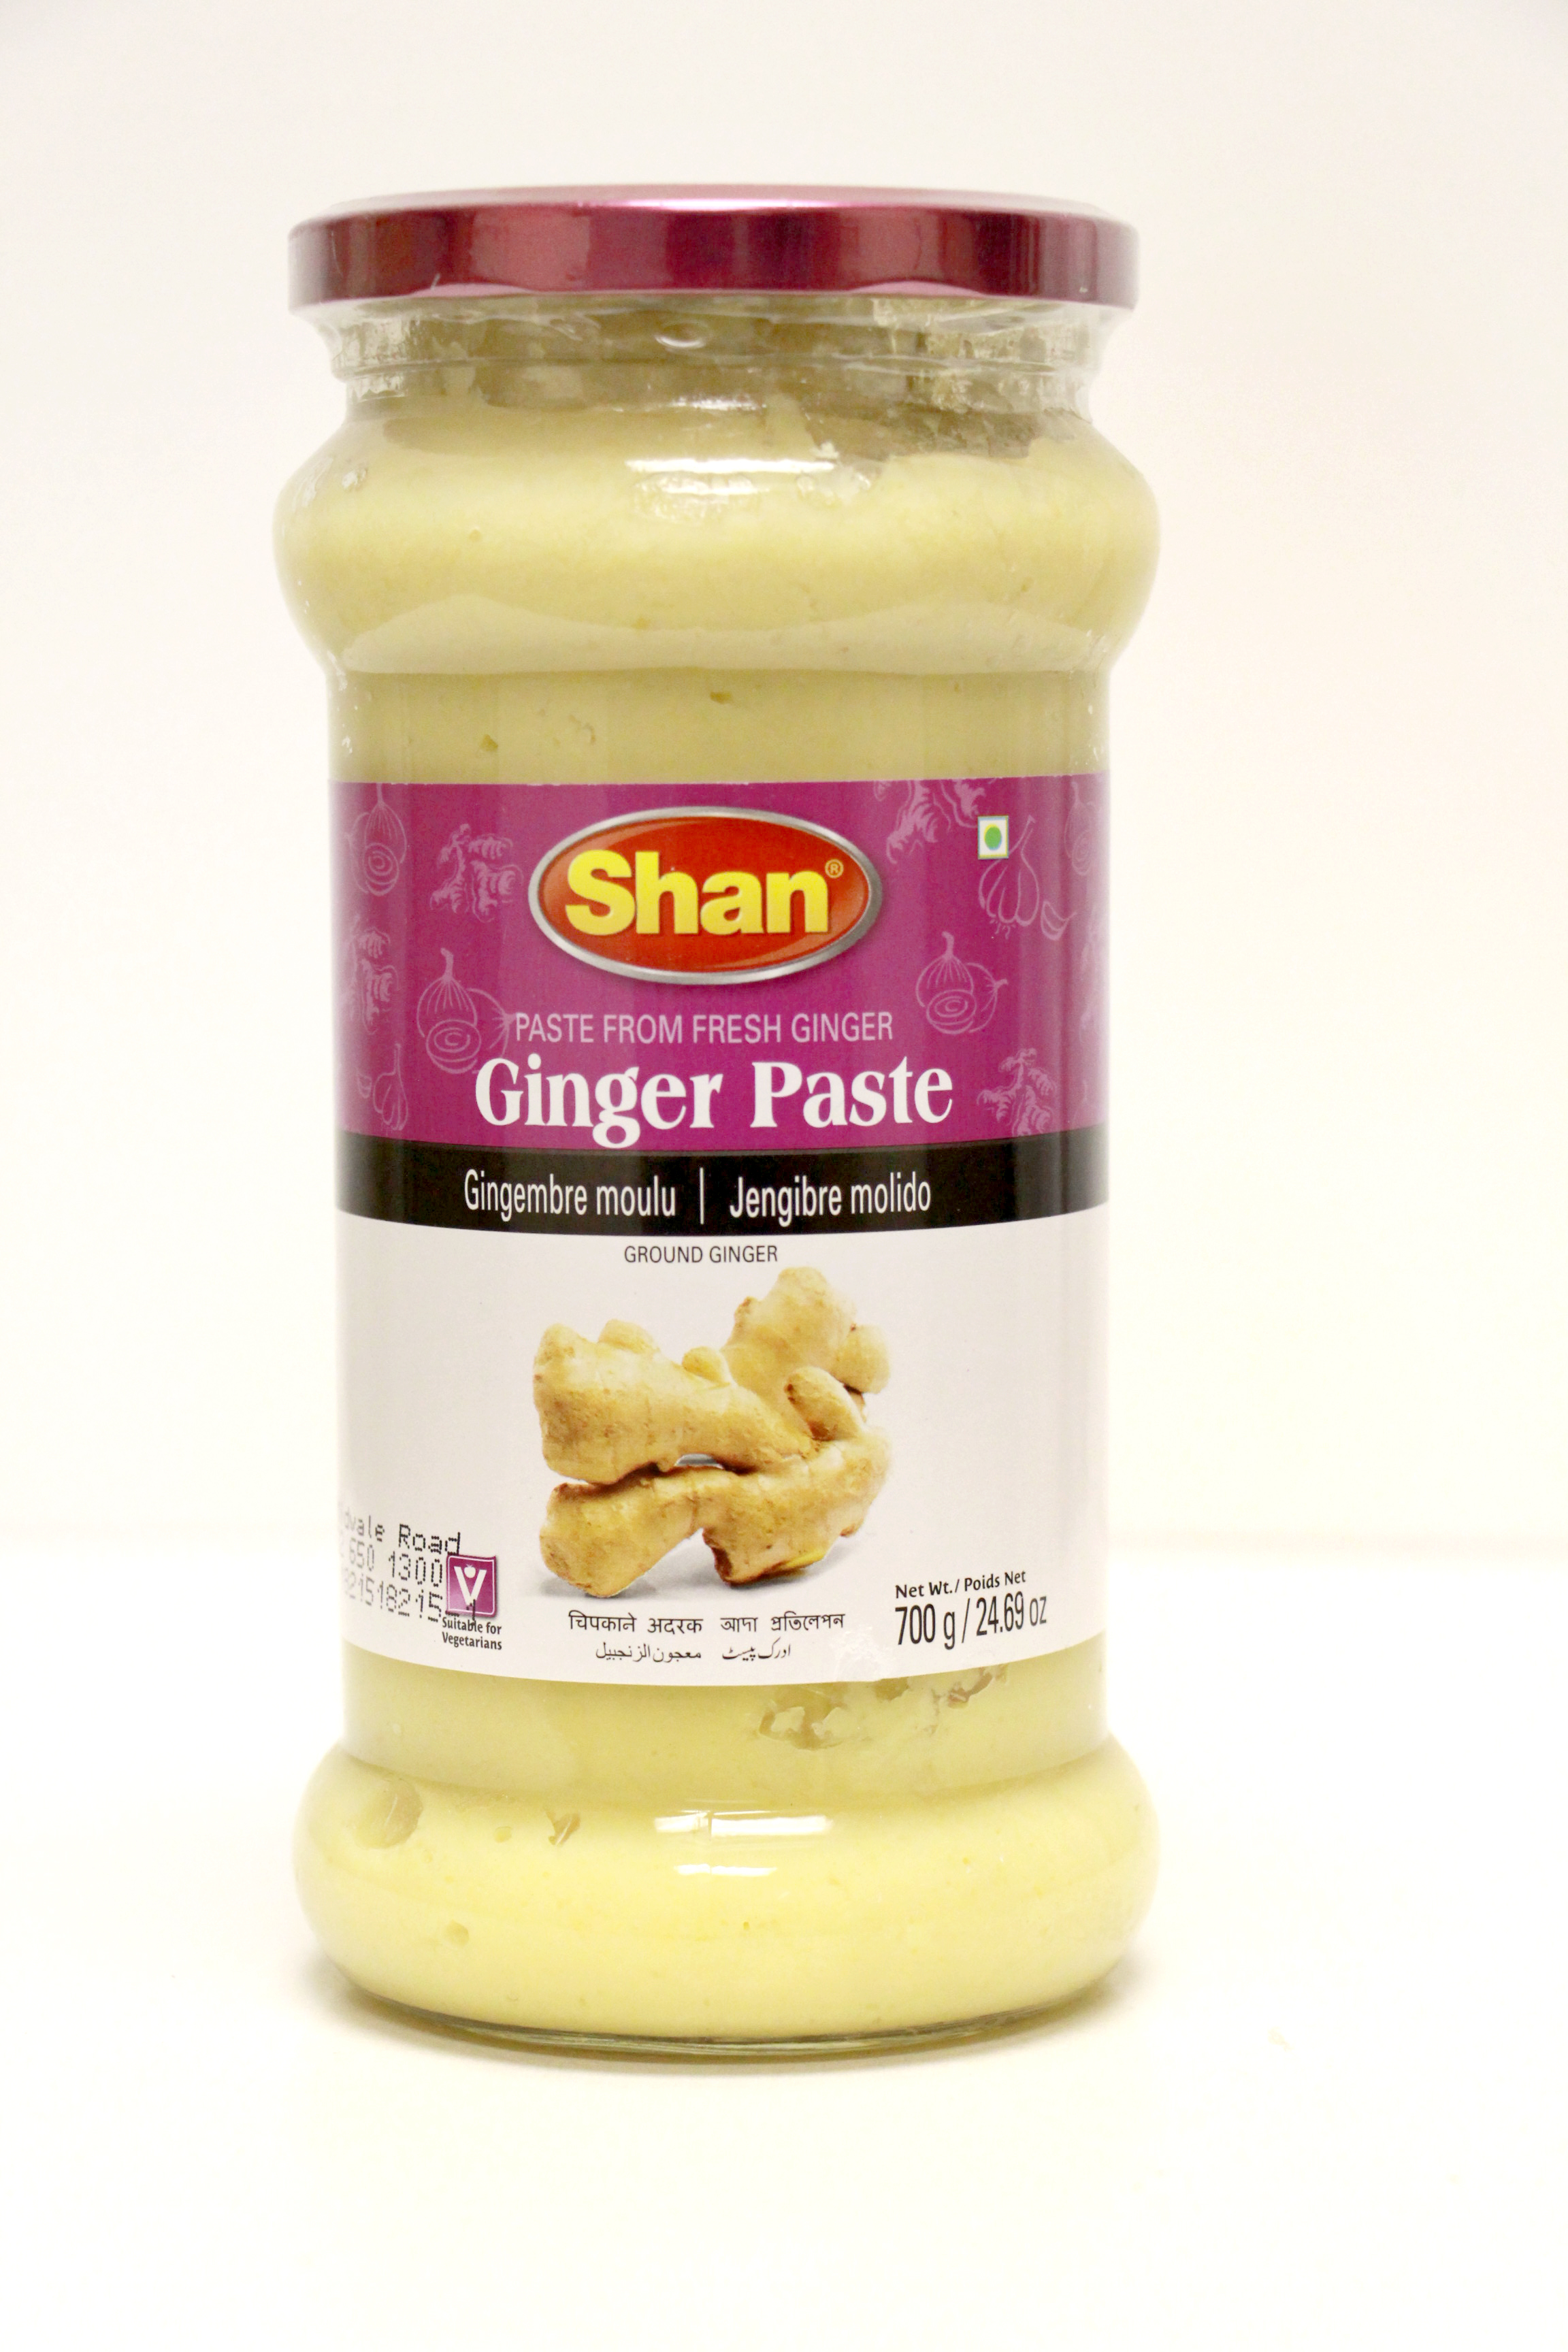 Shan ginger paste big